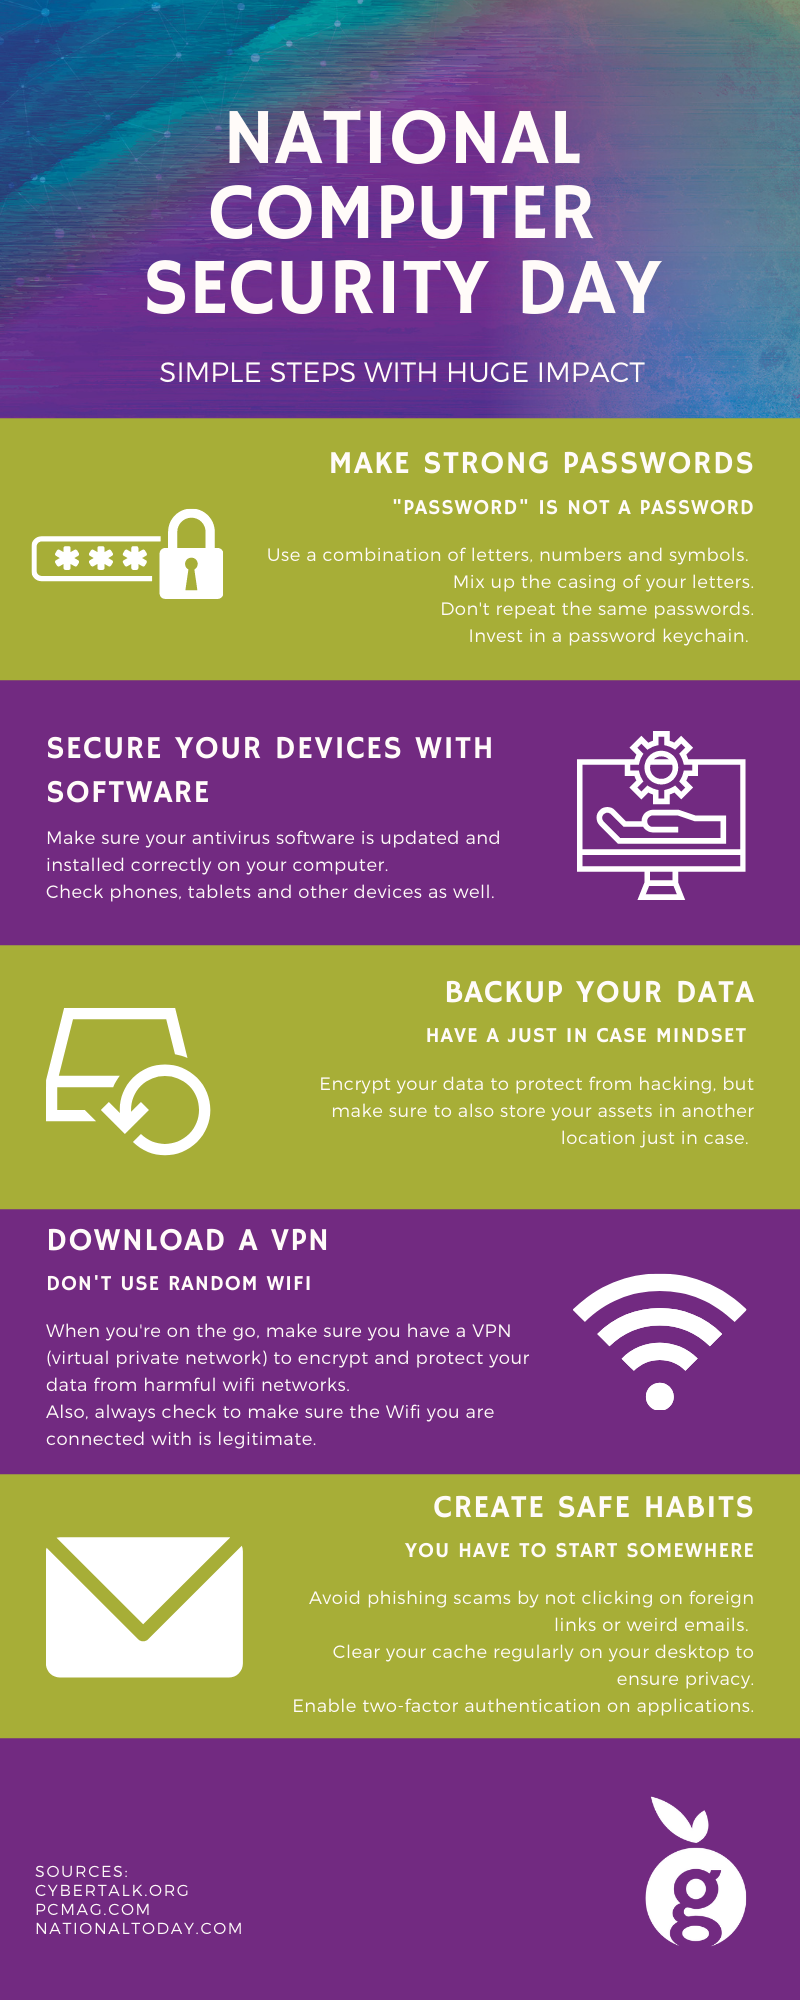 National Computer Security Day - Simple Steps with Huge Impact.